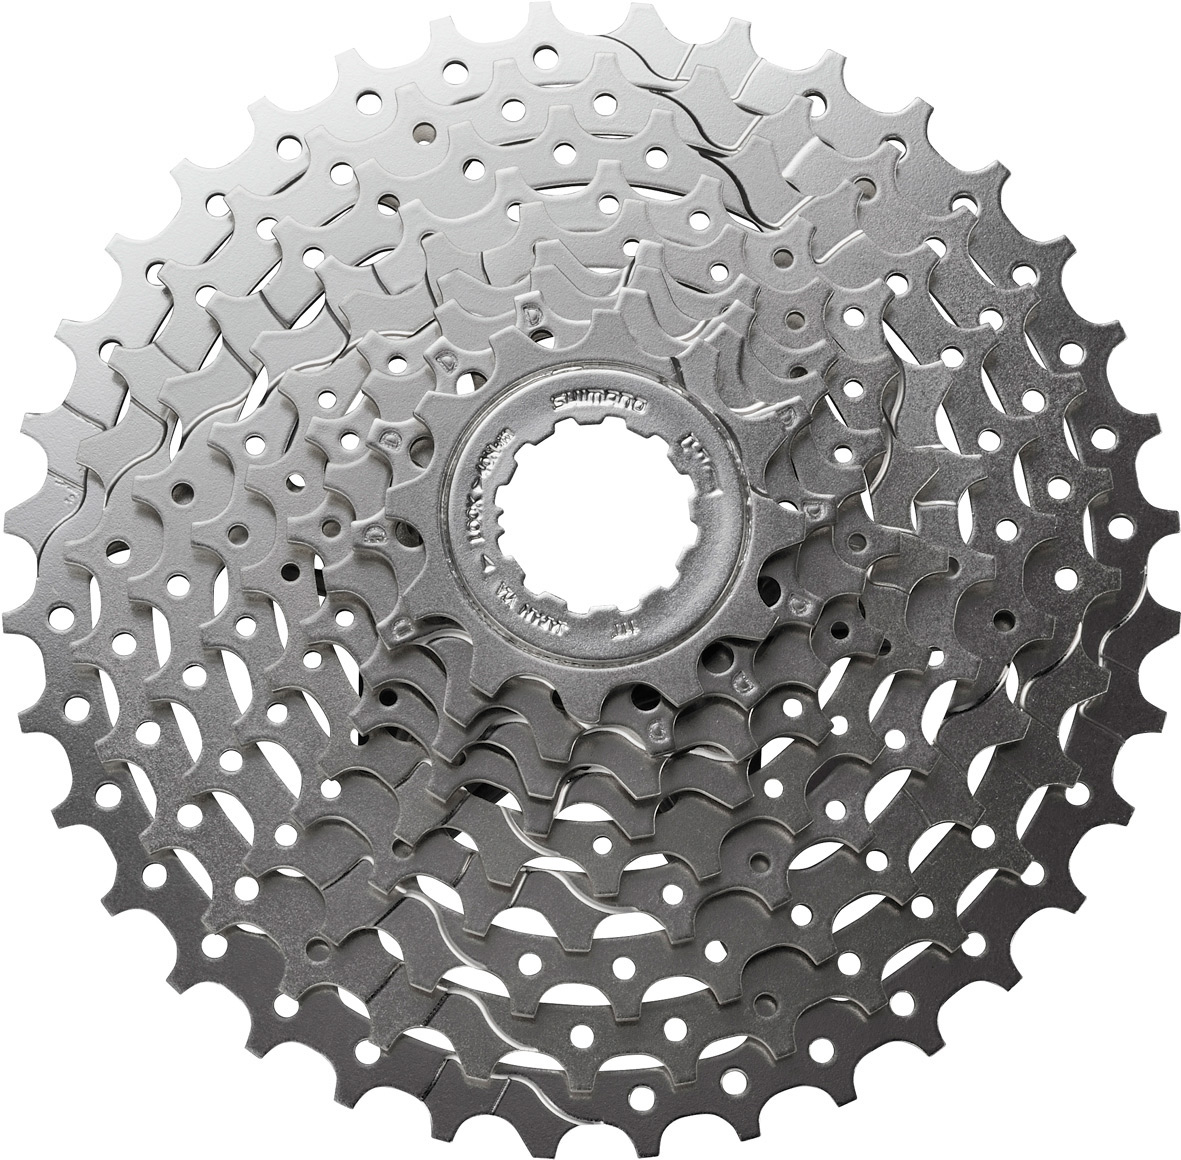 CS-HG400 Alivio 9-speed cassette 11-28